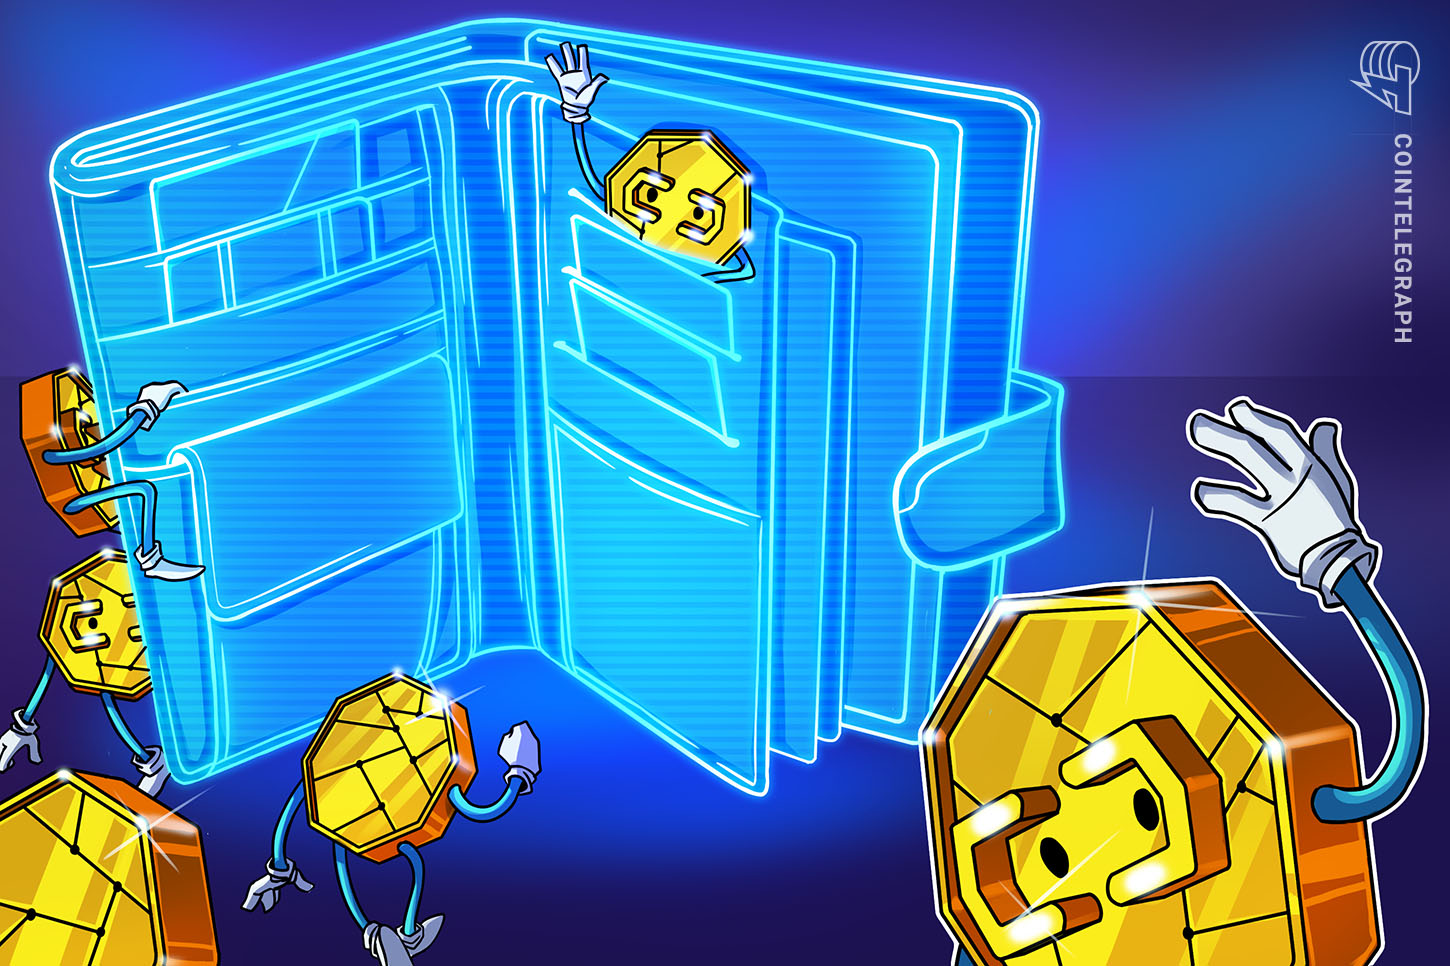 Crypto wallets: An important battlefront to gain wallet share and mind share